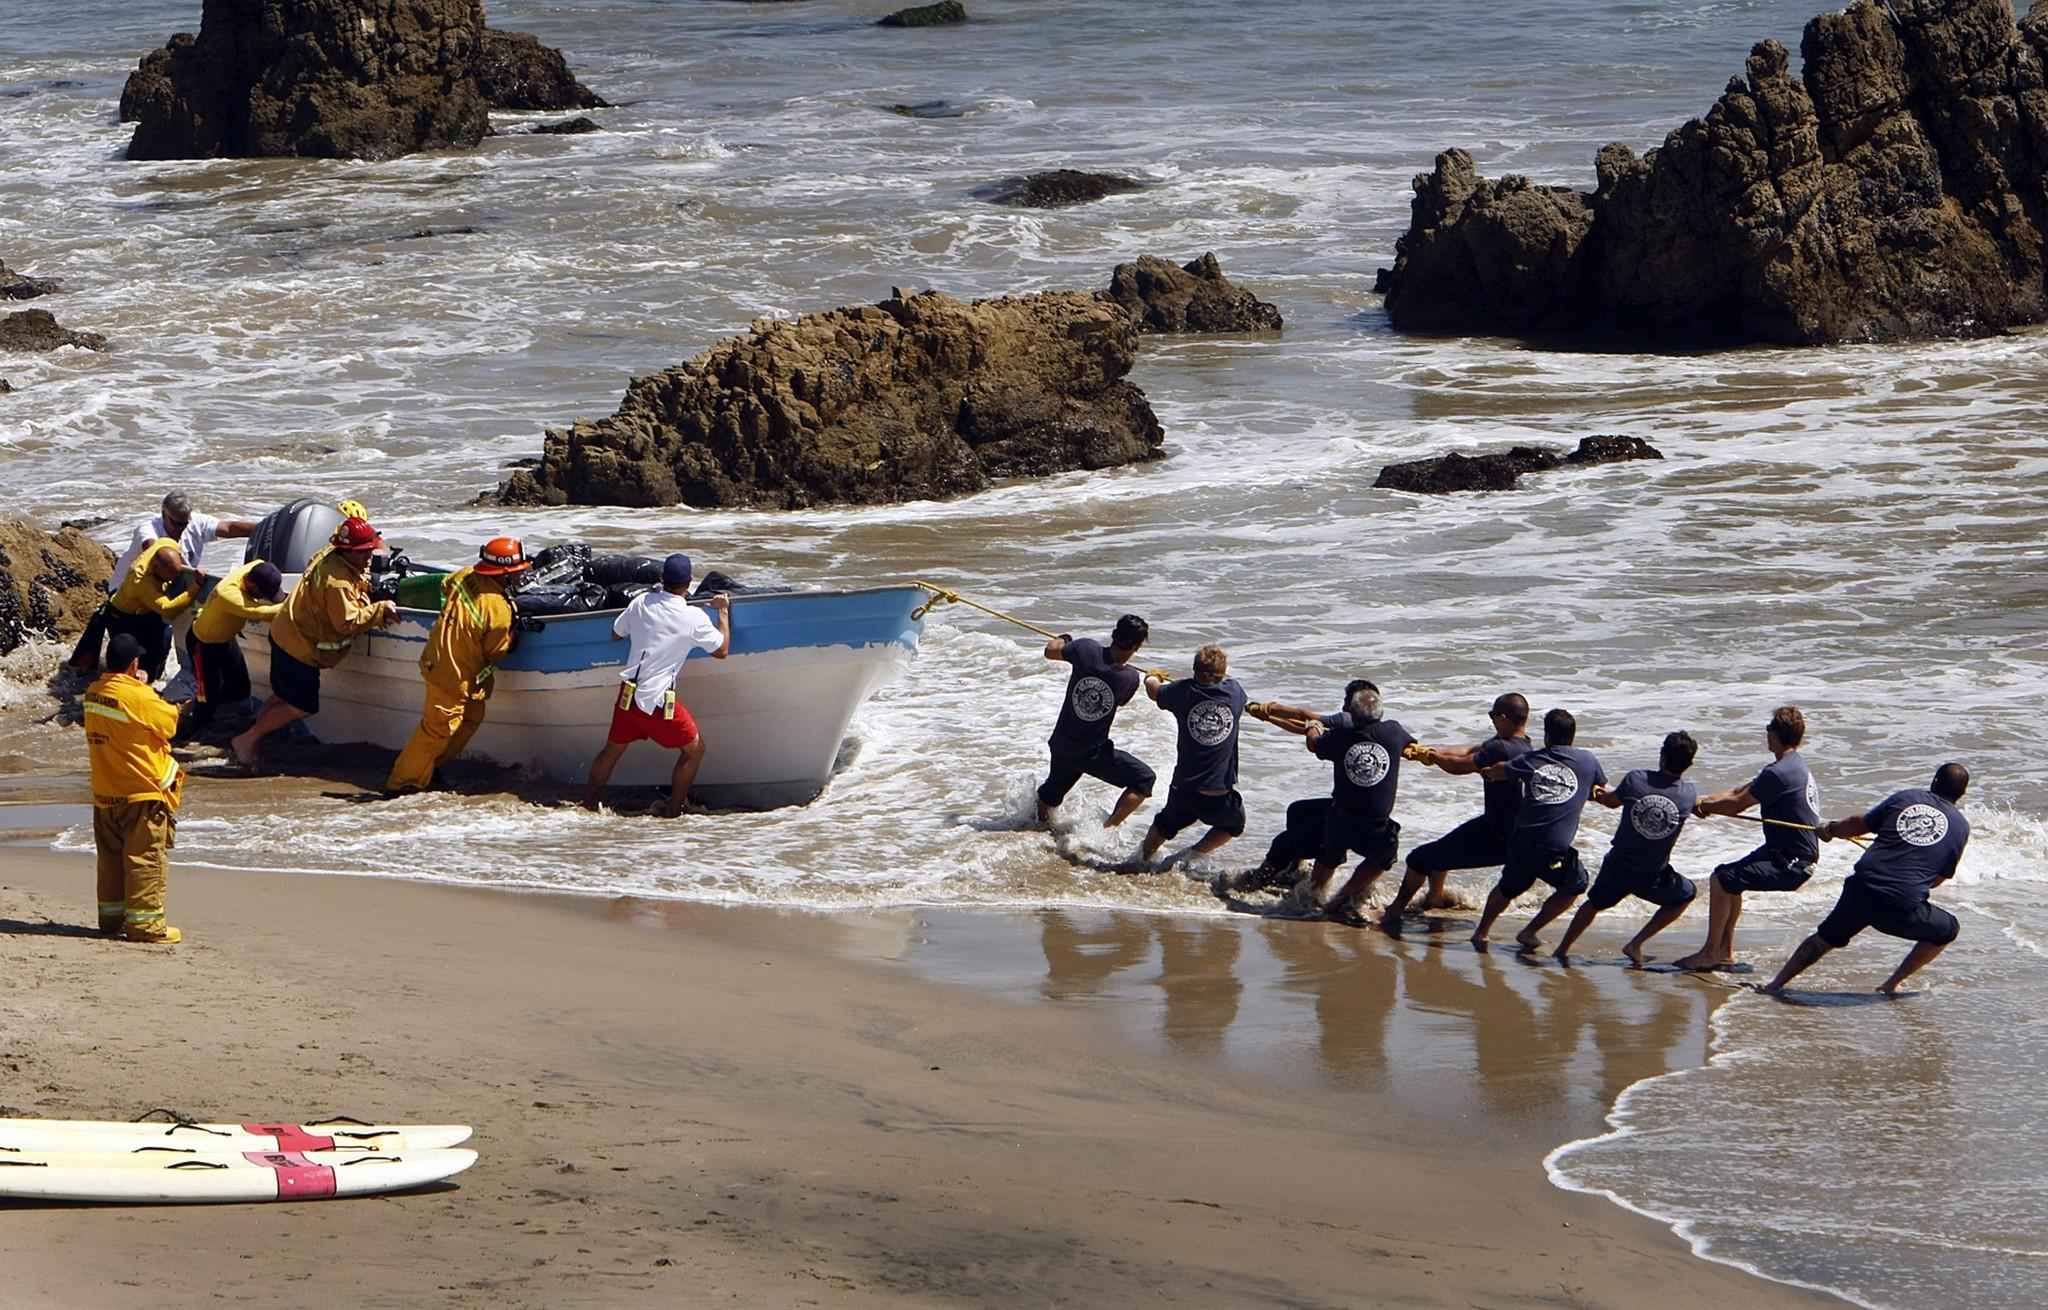 Firefighters pull a beached panga-style boat back into the water at Leo Carrillo State Beach in Malibu on Monday. The boat was seized after it washed ashore. Authorities said it was loaded with as much as a ton of marijuana.